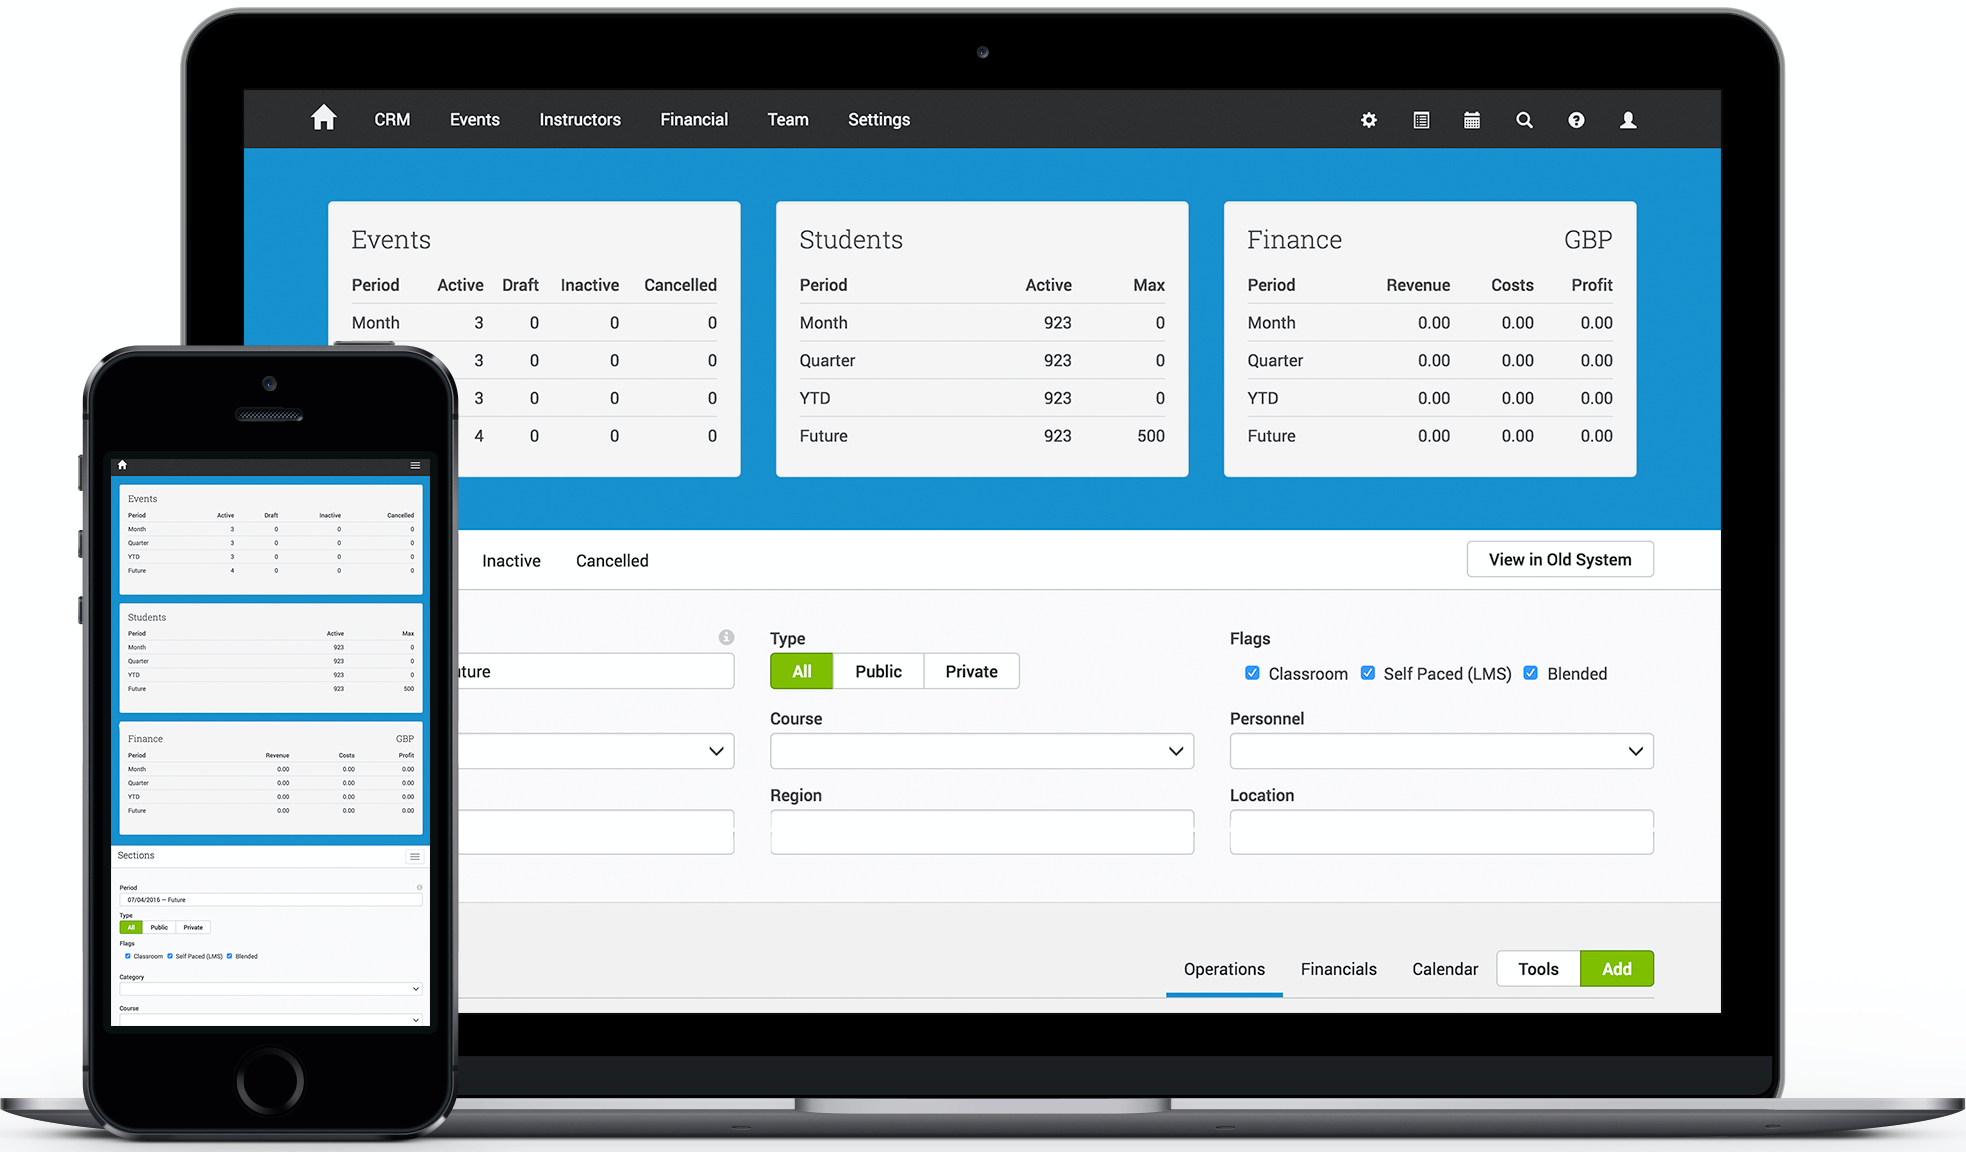 Easily manage training events with the mobile-friendly Events Management System